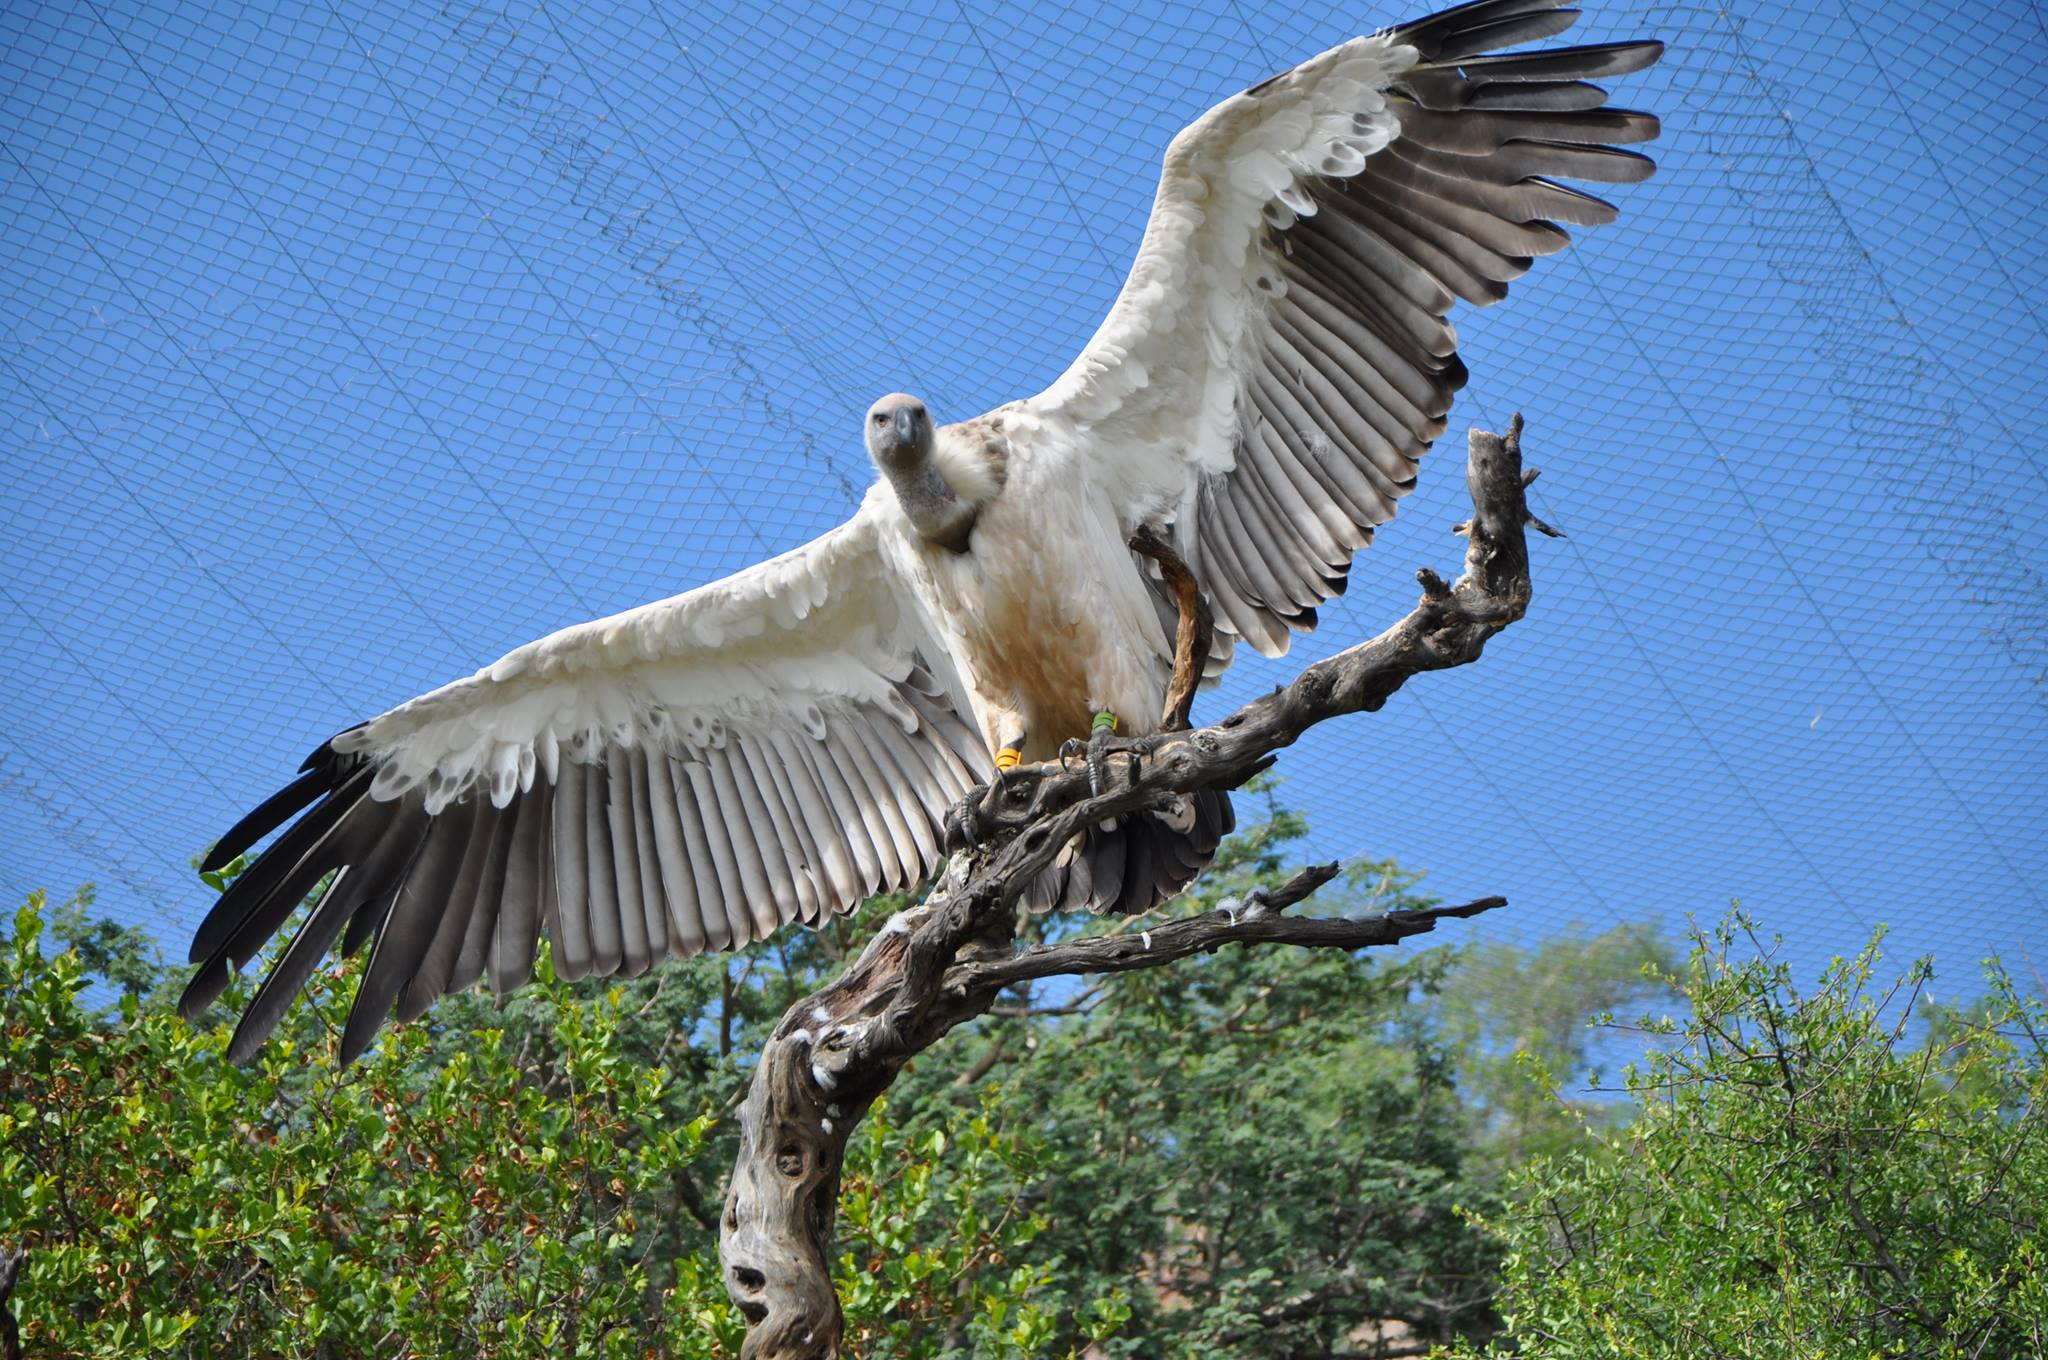 Some of the other animals in the care of Rest - Vultures